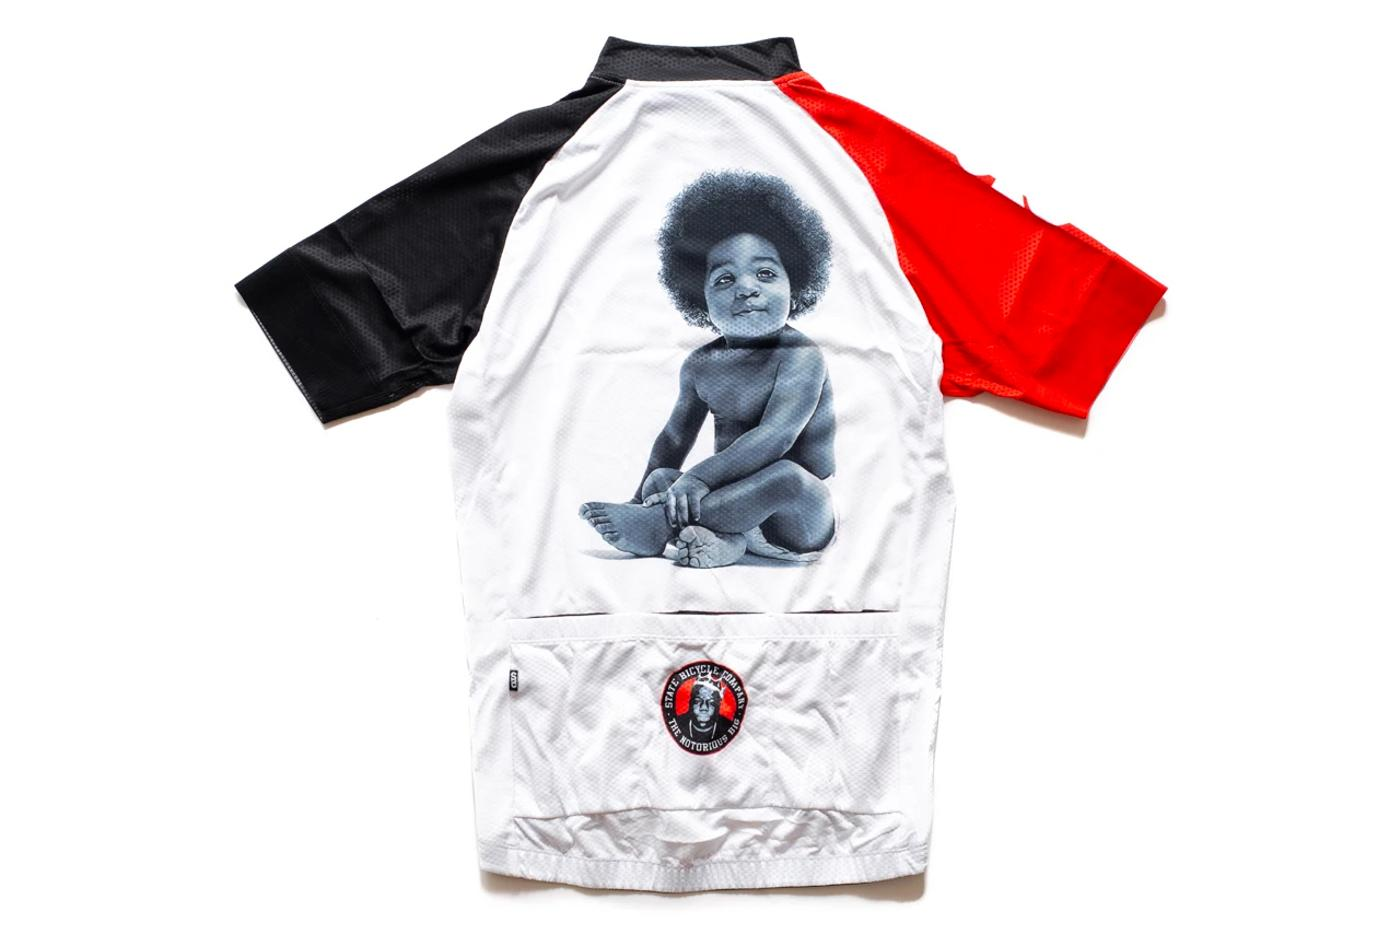 State Bicycle Co. x The Notorious B.I.G. Collection